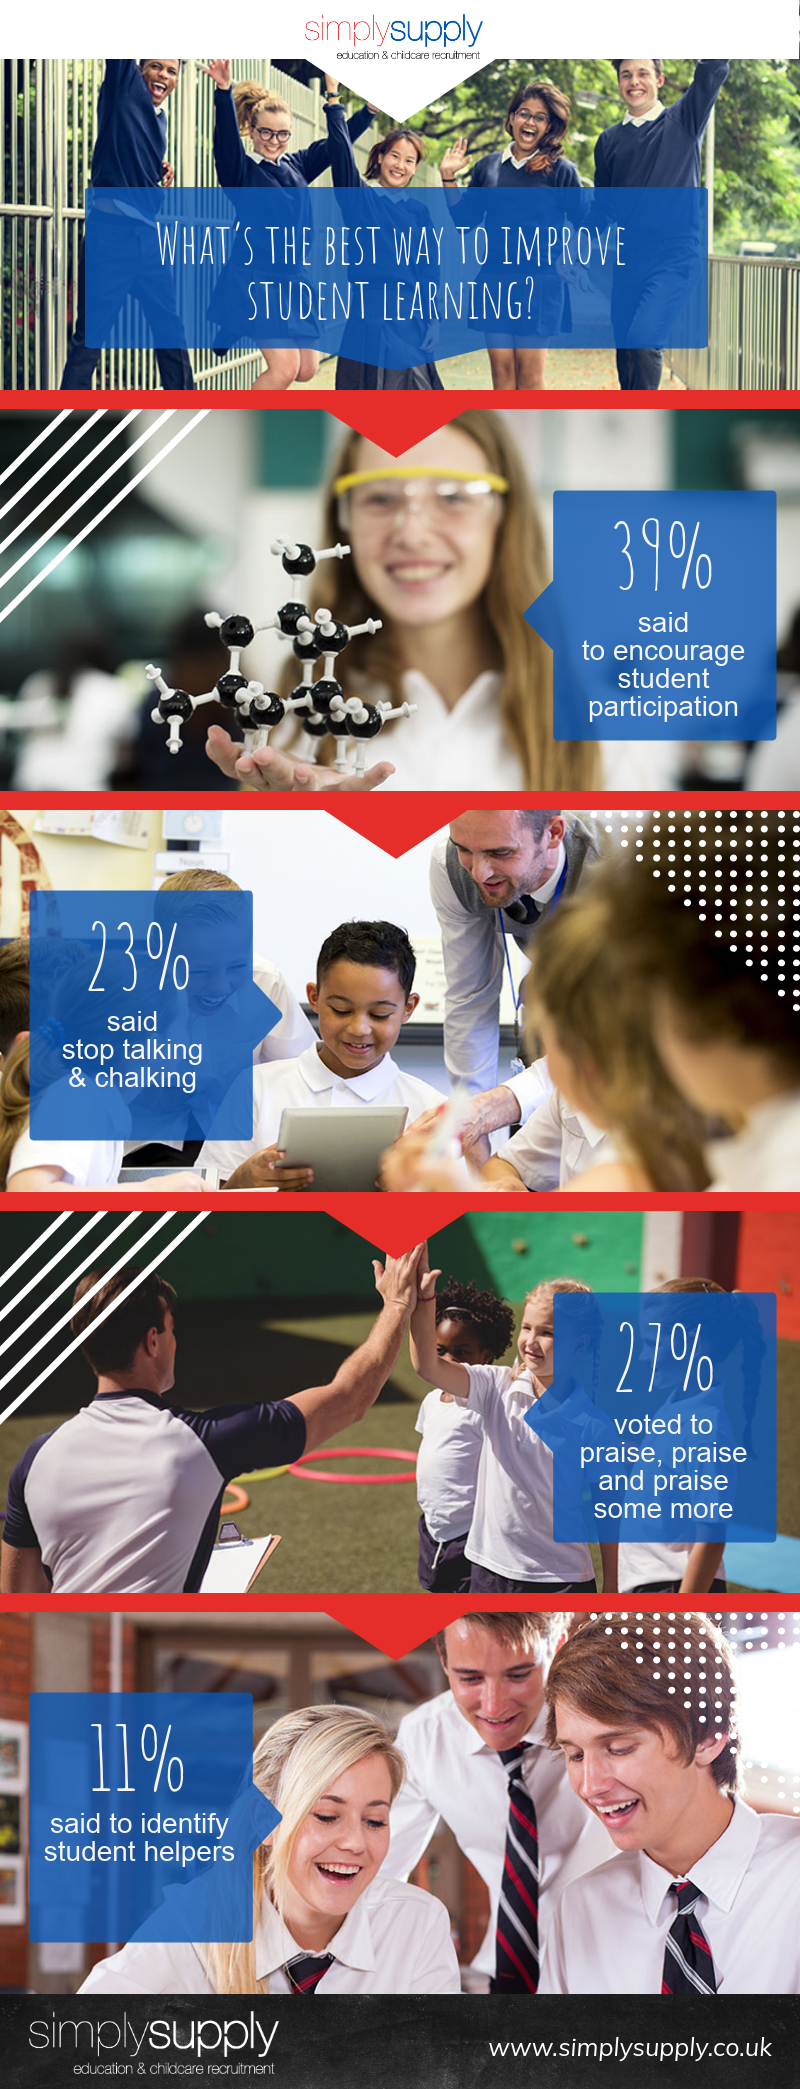 march simply supply teaching - What's the best way to improve student learning - infographic